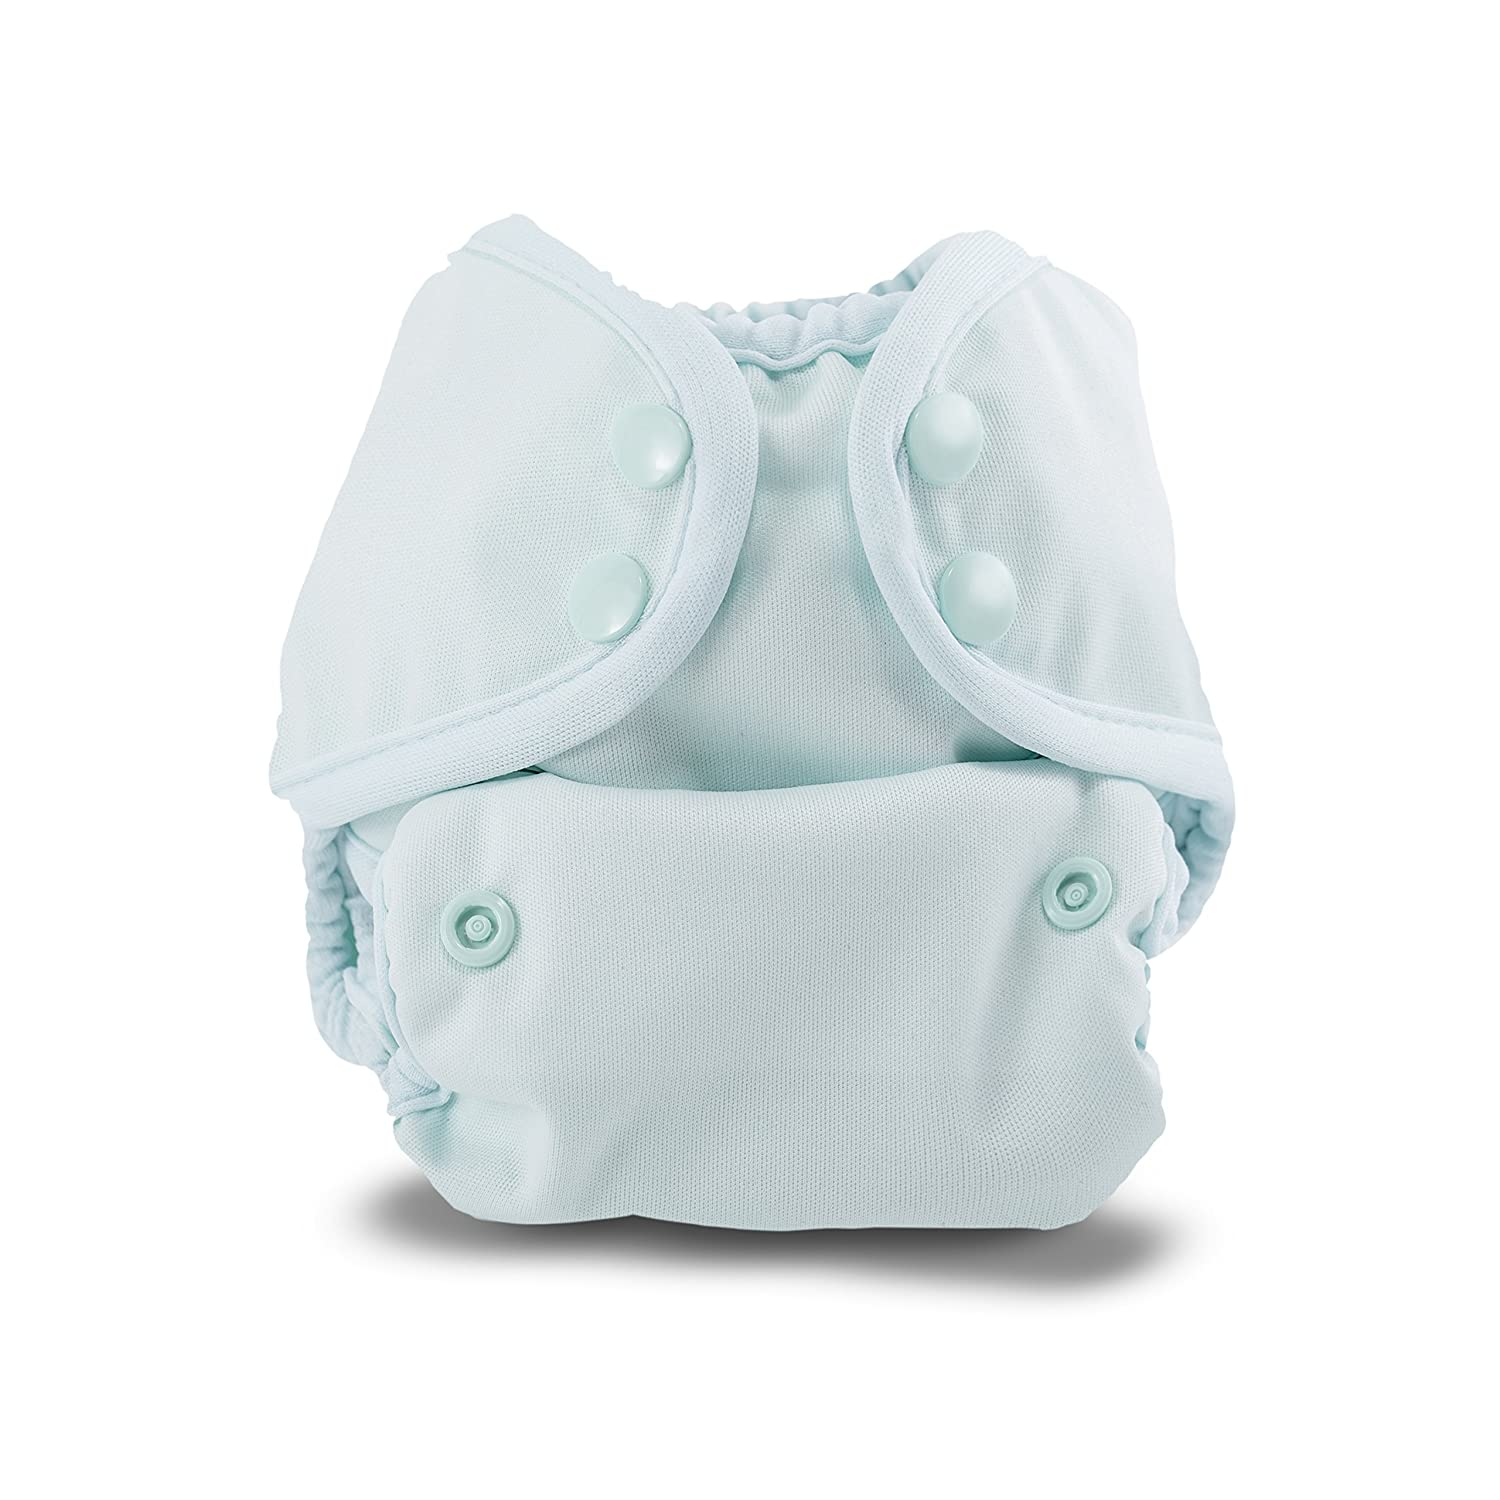 Buttons Cloth Diaper Cover – Newborn Snap (7-12lbs)